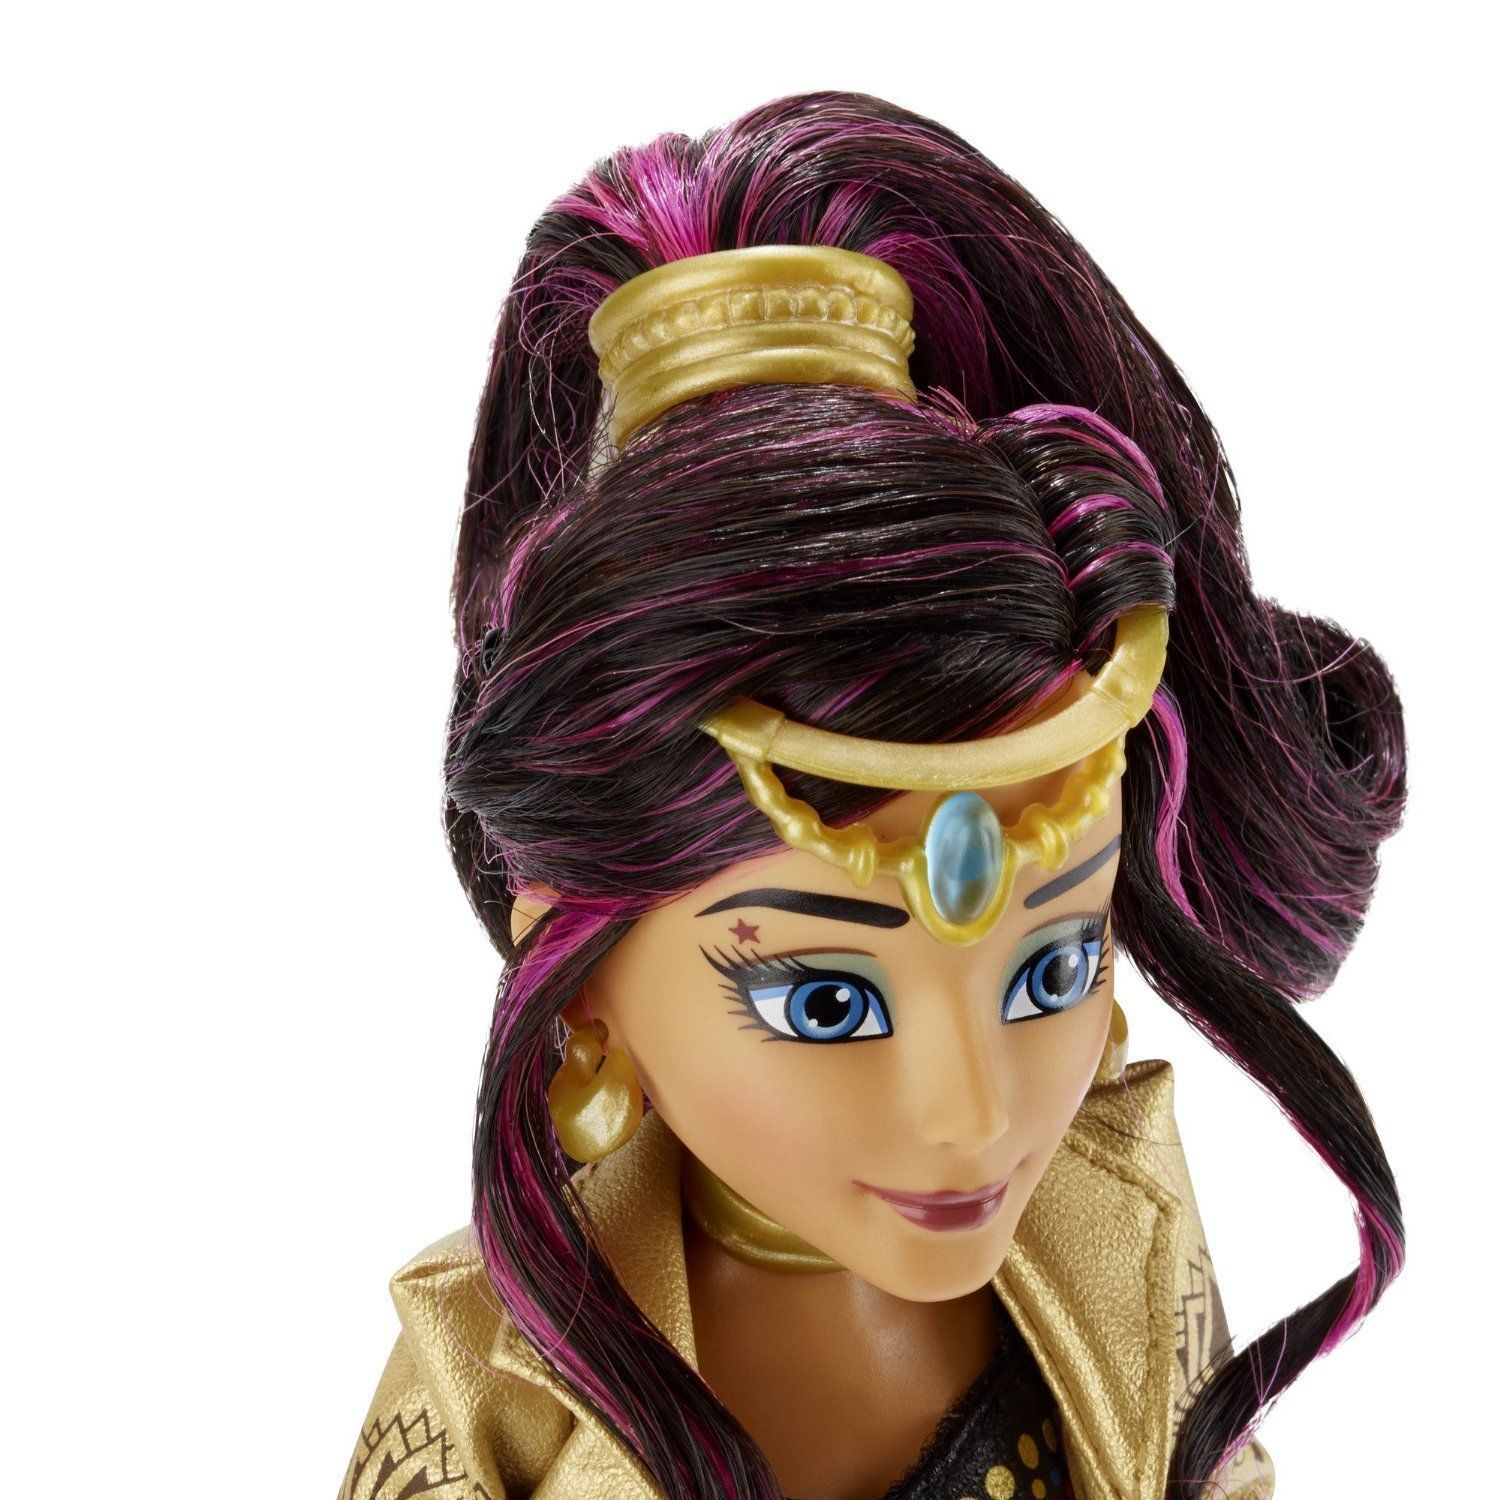 Image 4 of Disney Descendants Auradon Genie Chic Jordan Doll